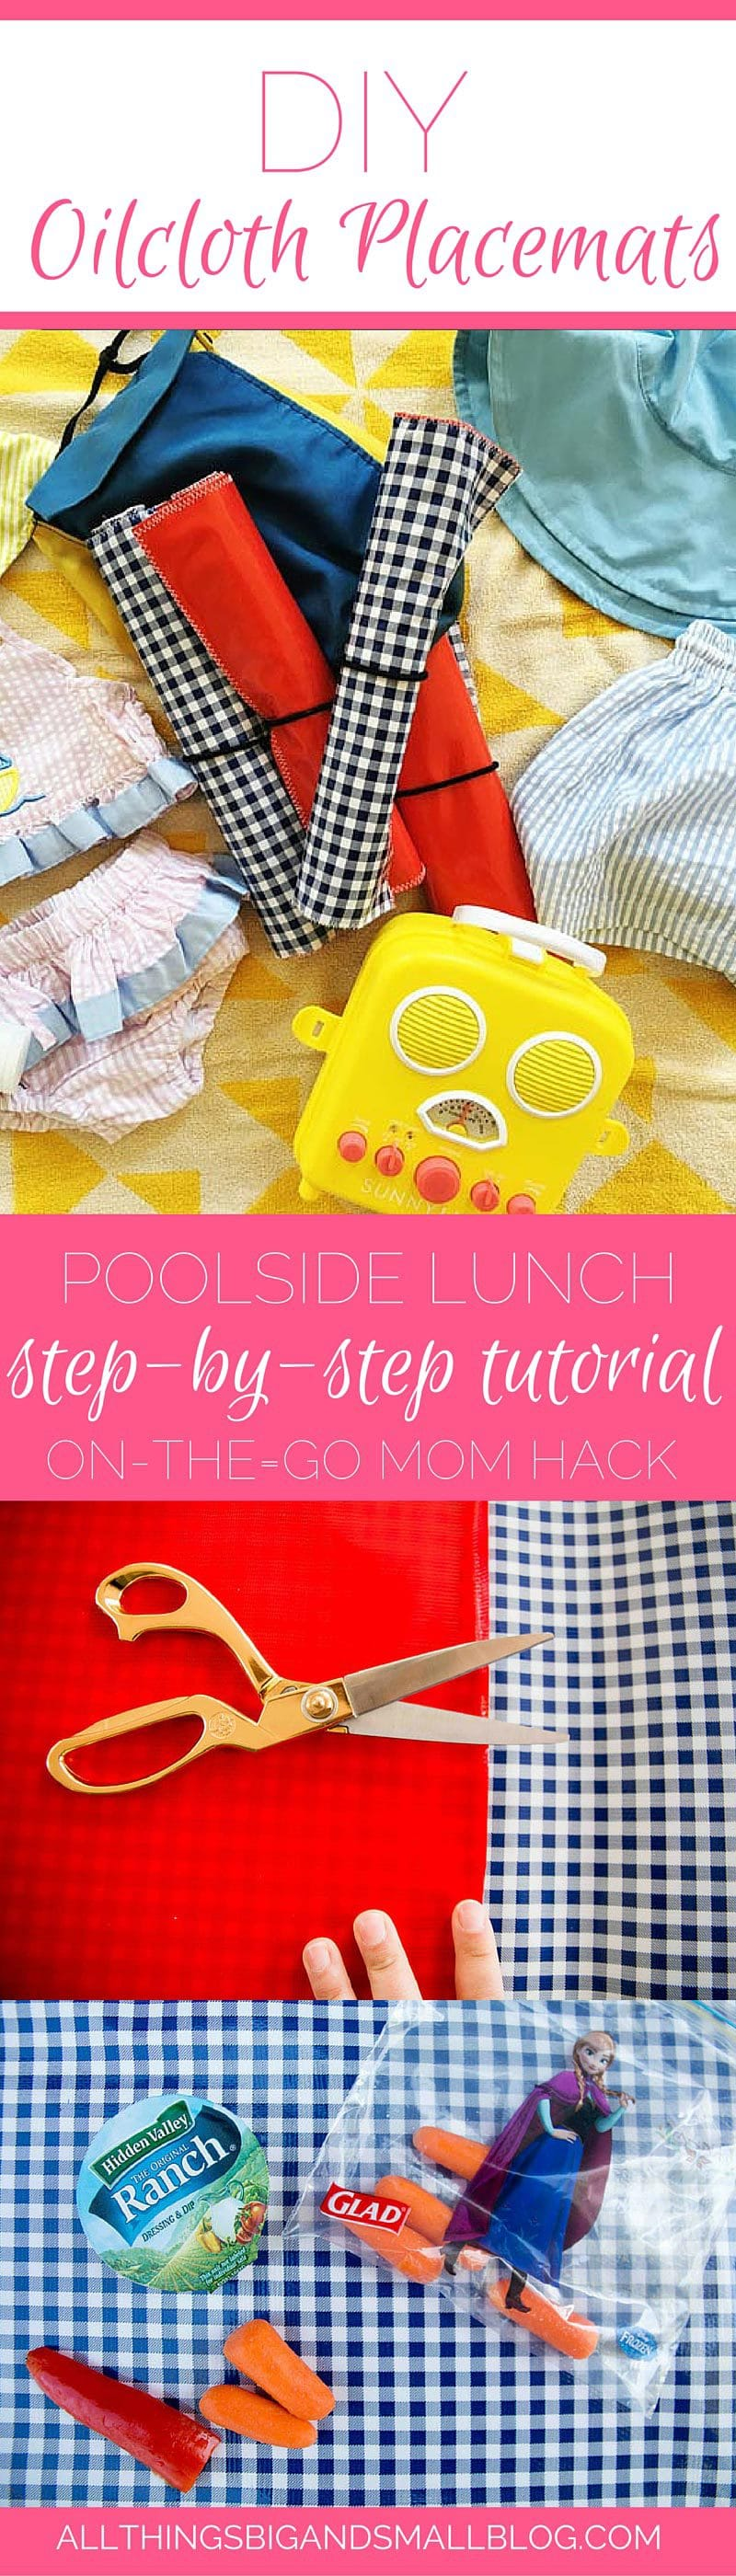 DIY Oilcloth Placemat- an easy DIY for the on-the-go mom. #ad Perfect for poolside lunches! This step-by-step is an easy DIY for parents of toddlers to get them to eat their lunches! DIY Oilcloth Placemats by home decor blogger DIY Decor Mom